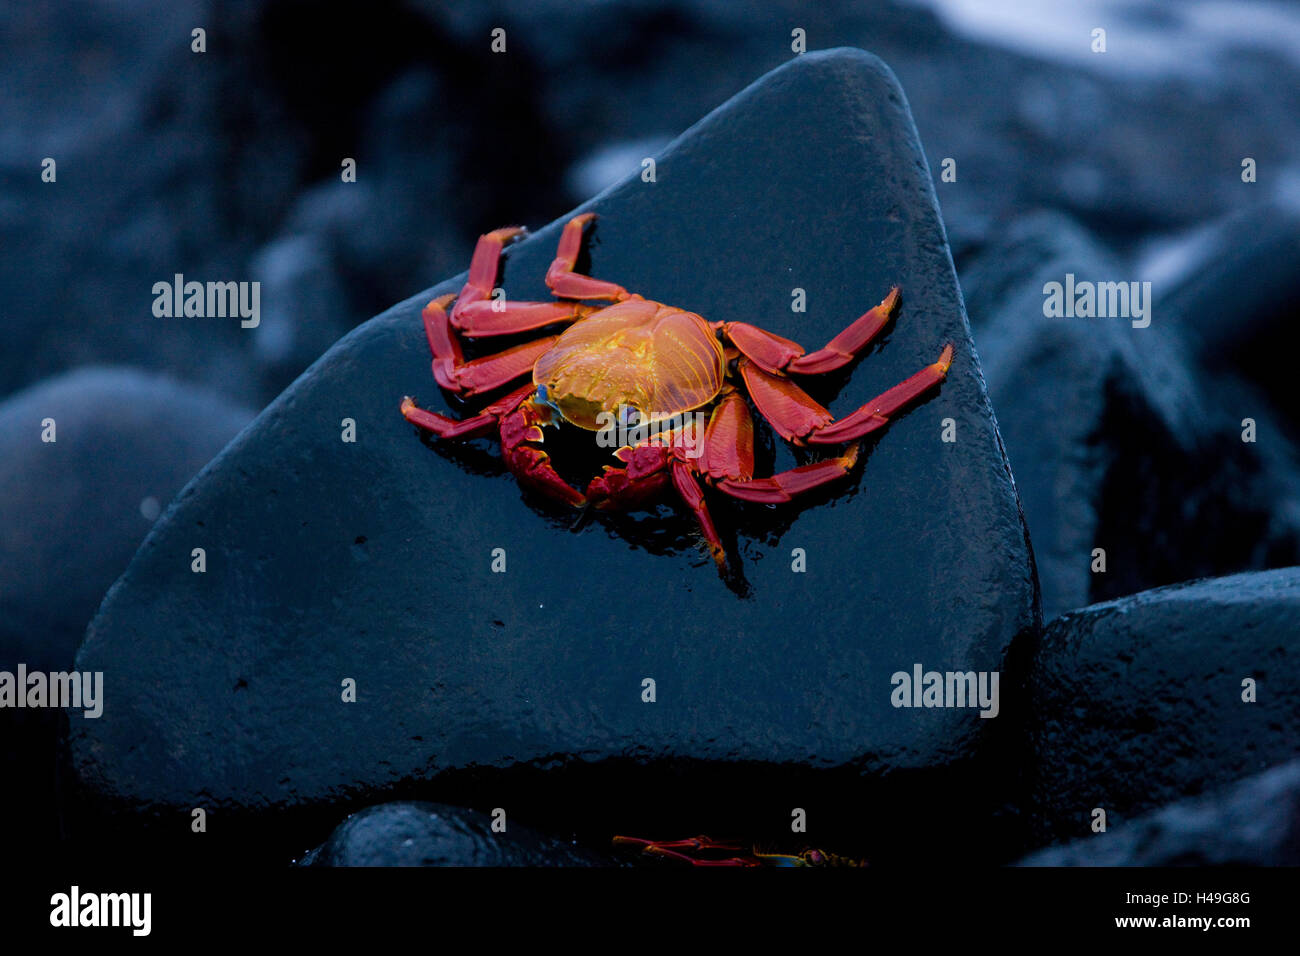 Red cliff crab, Grapsus grapsus, Ecuador, the Galapagos Islands, South America, Galapagos, island, coast, rock, - Stock Image